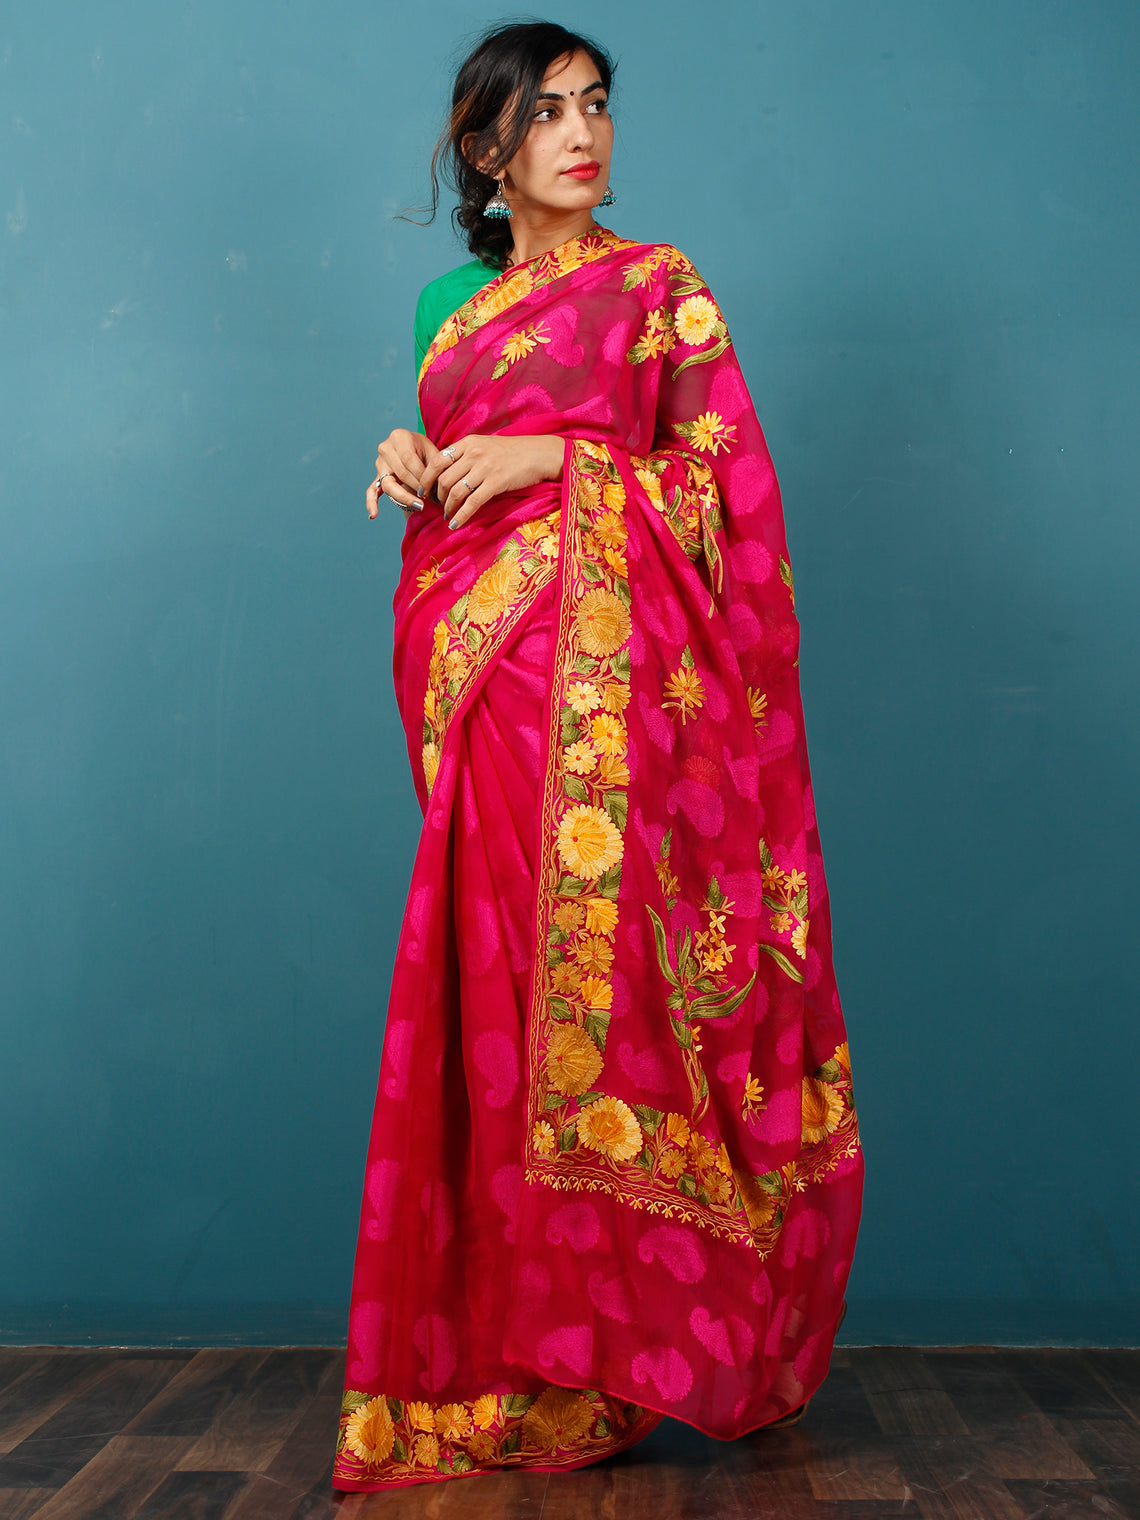 Maroon Yellow Green Aari Embroidered Chiffon Saree With Paisley Self From Kashmir - S031703078